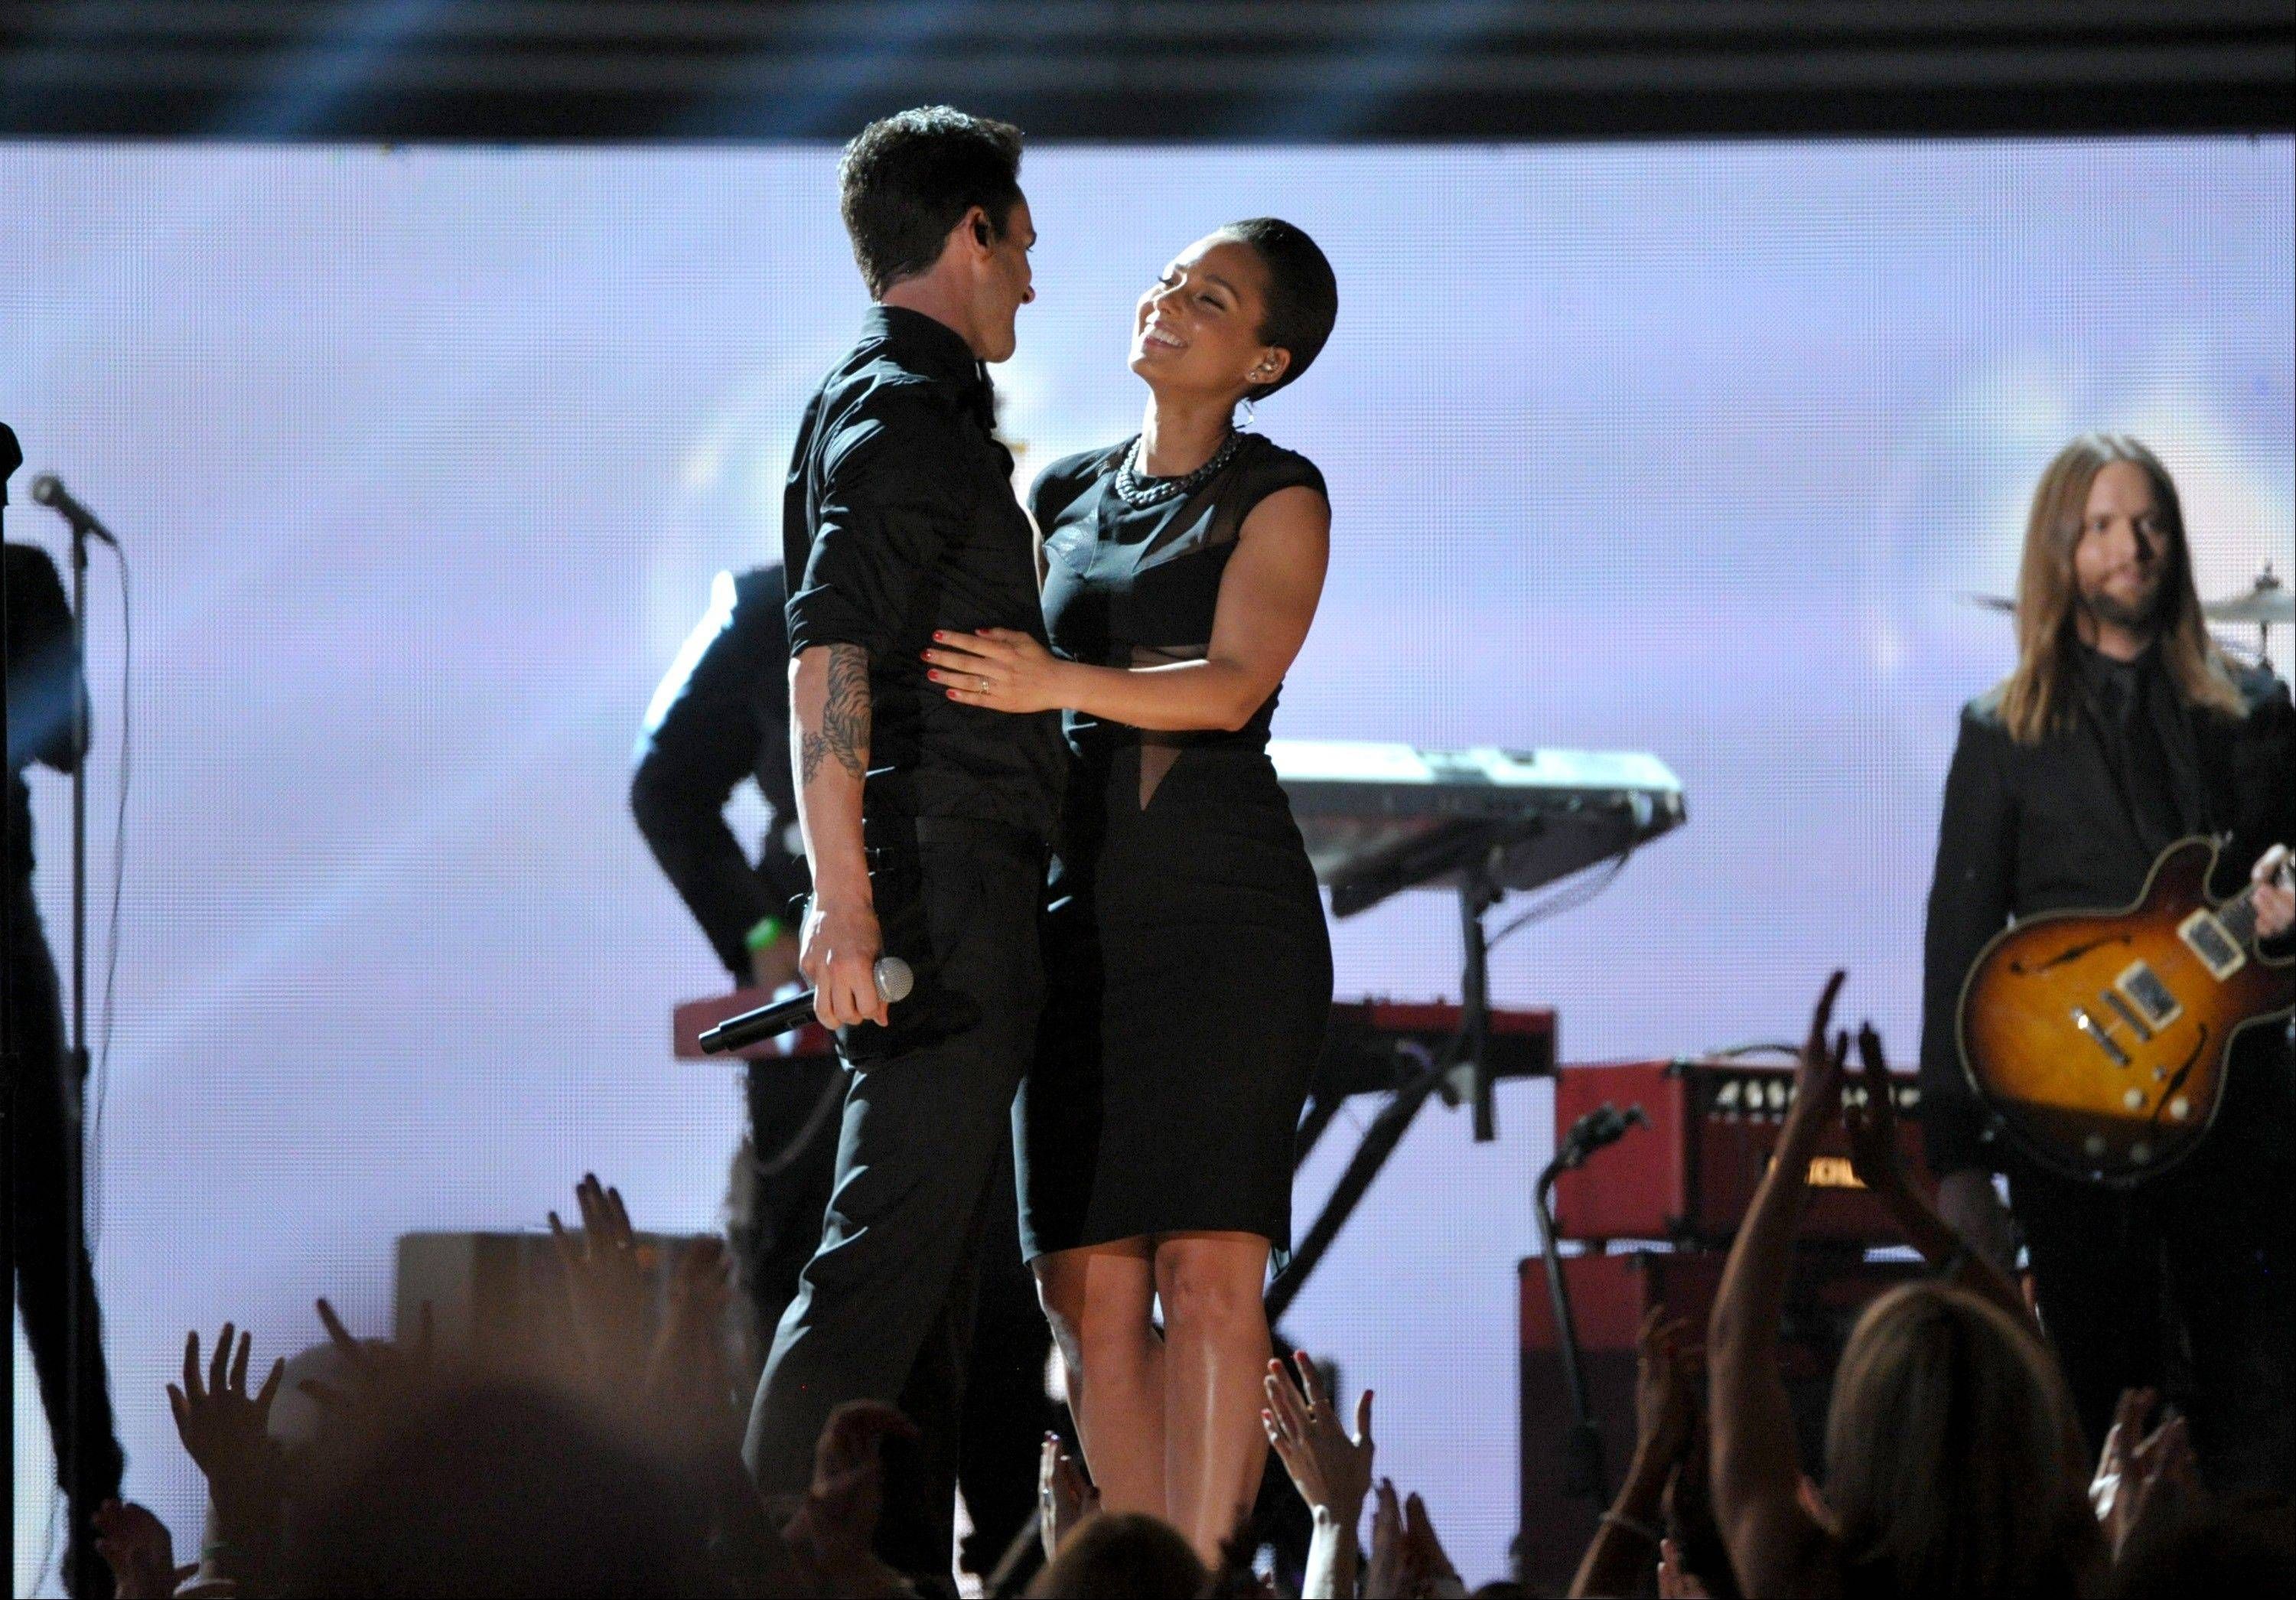 Adam Levine of Maroon 5, and Alicia Keys perform at the 55th annual Grammy Awards on Sunday, Feb. 10, 2013, in Los Angeles.